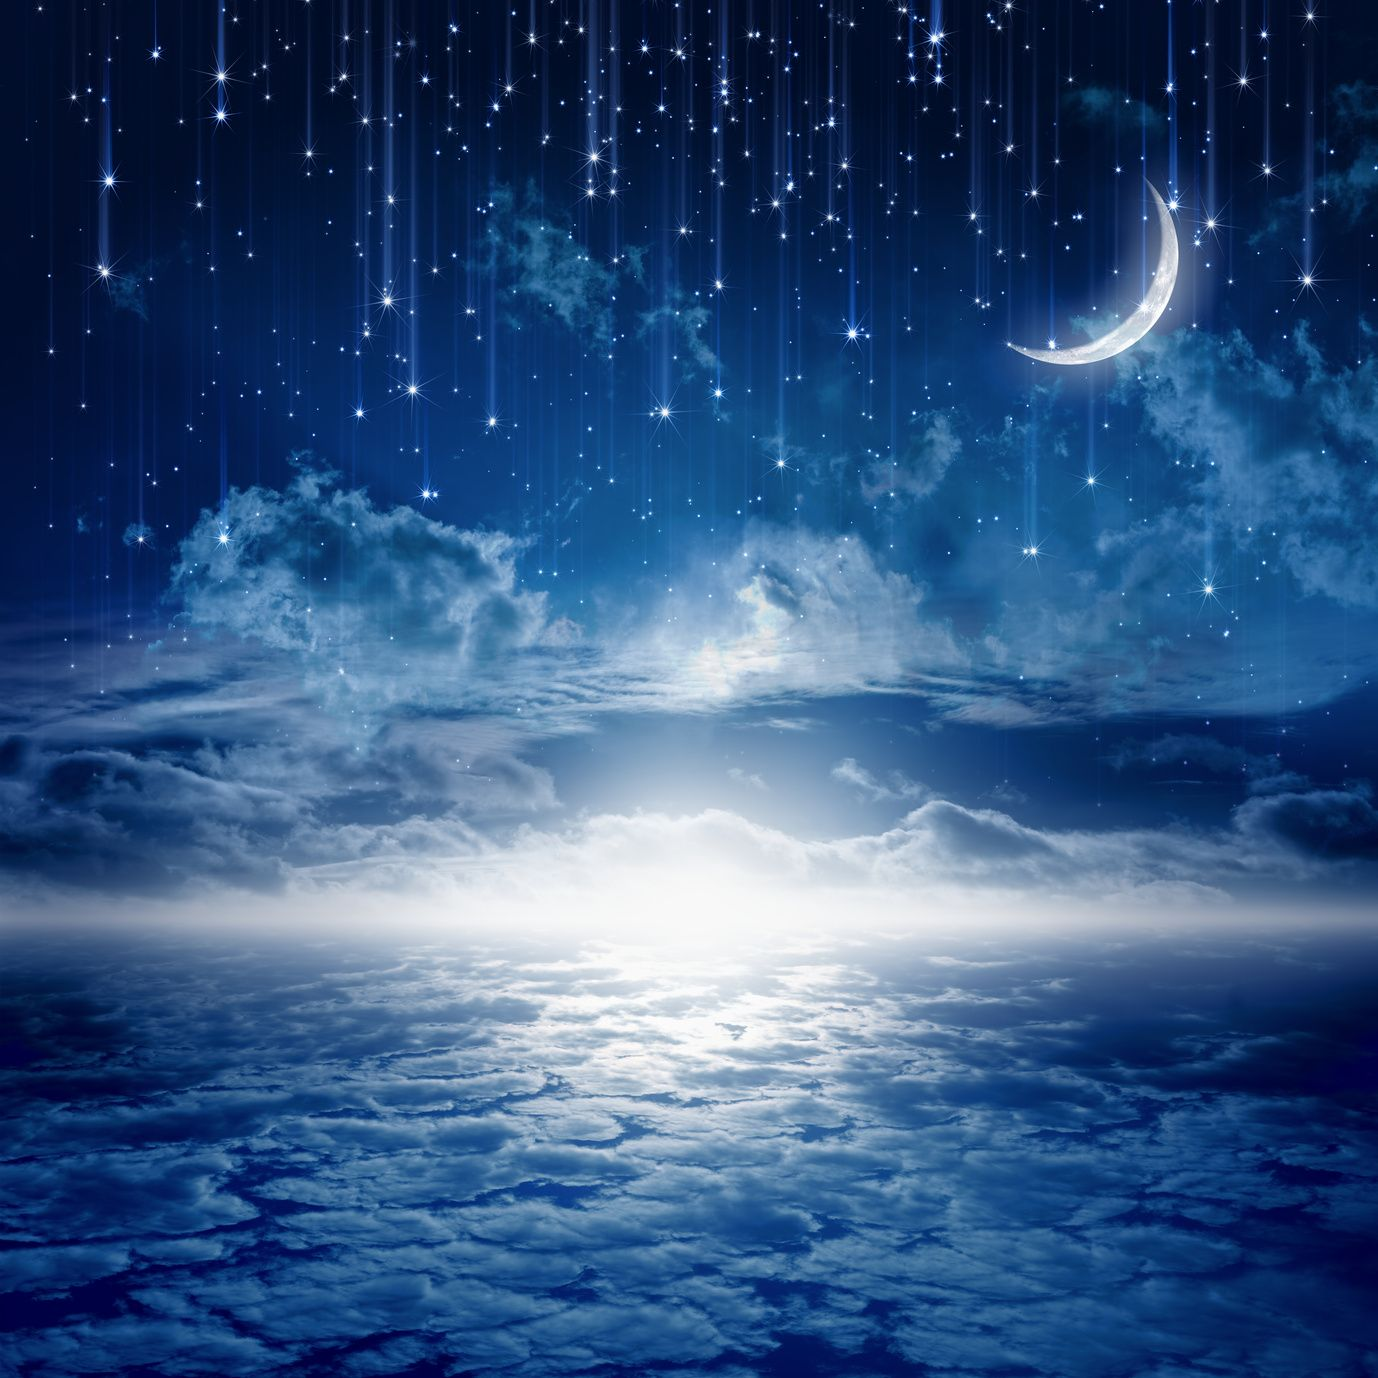 Peaceful Background Blue Night Sky With Moon Stars Beautiful Clouds Glowing Horizon